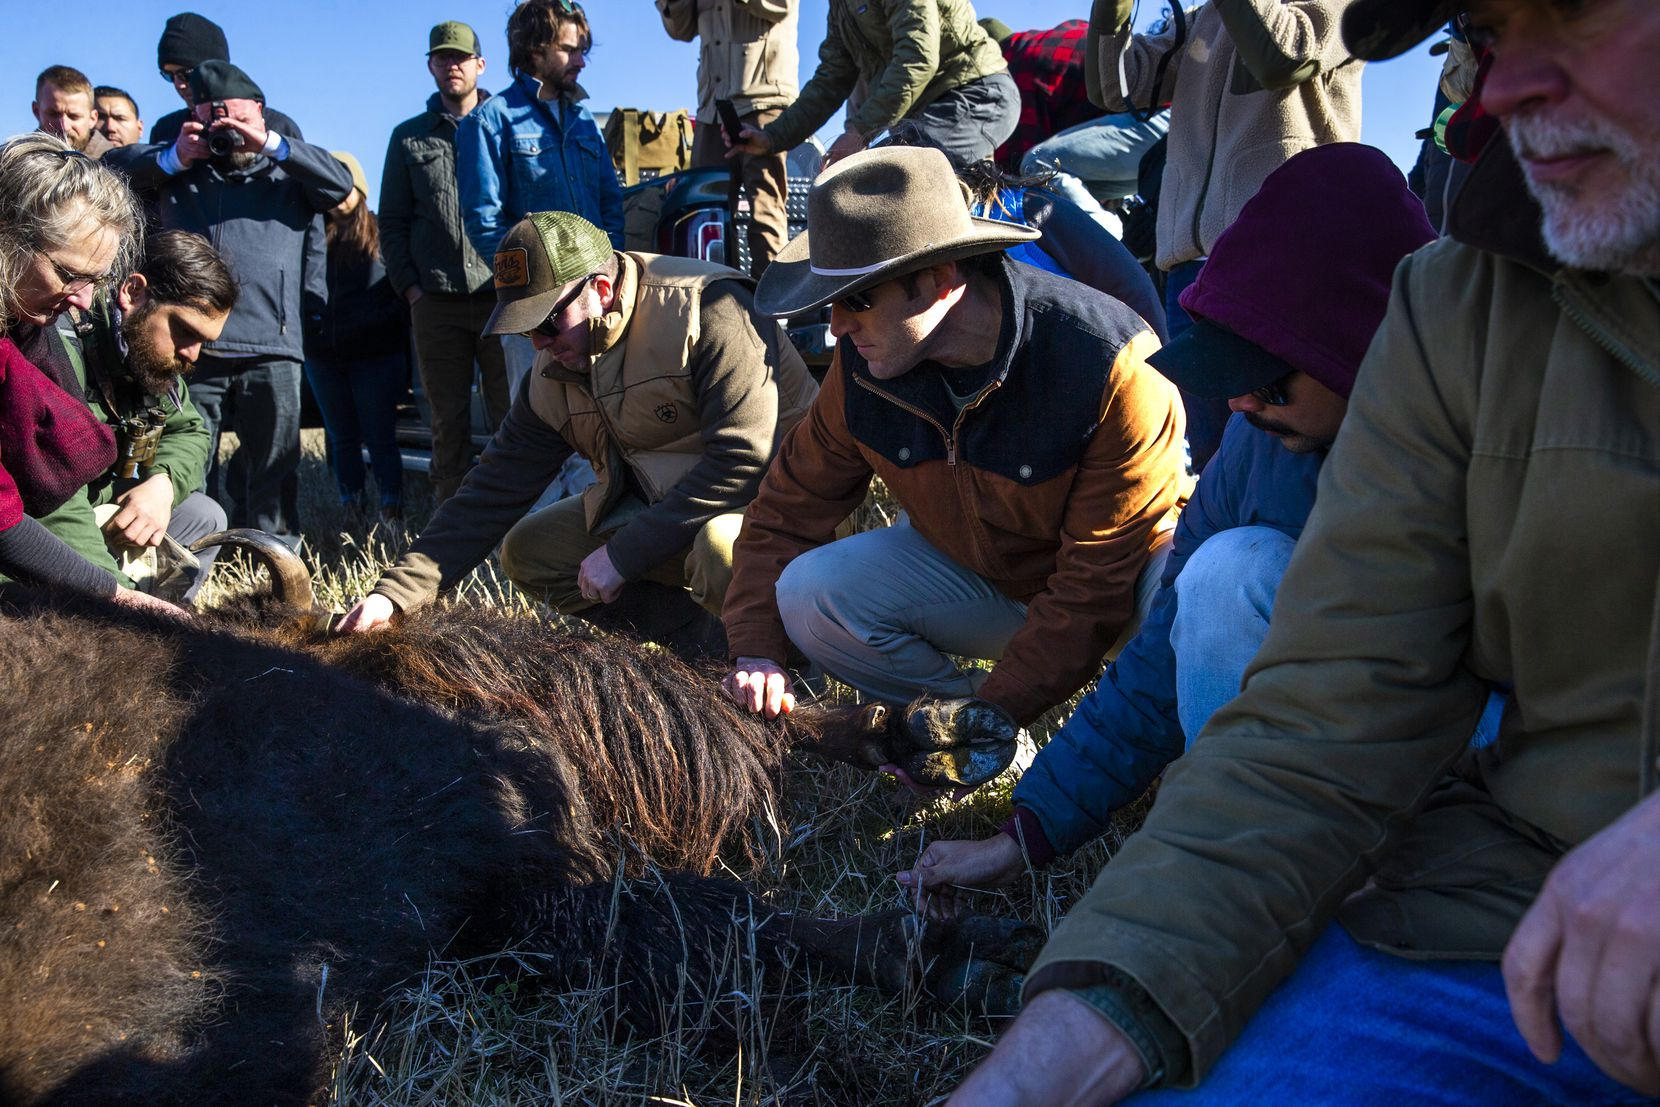 John Dilday (center), from Fort Worth, Texas, gently touches the body of bison 26 shortly after her death during a bison field harvest event at Roam Ranch in Fredericksburg, Texas, on Sunday, Jan. 19, 2020. Paying attendees learned about the ranch's regenerative agriculture model and to witness and participate in the field harvest of a bison.